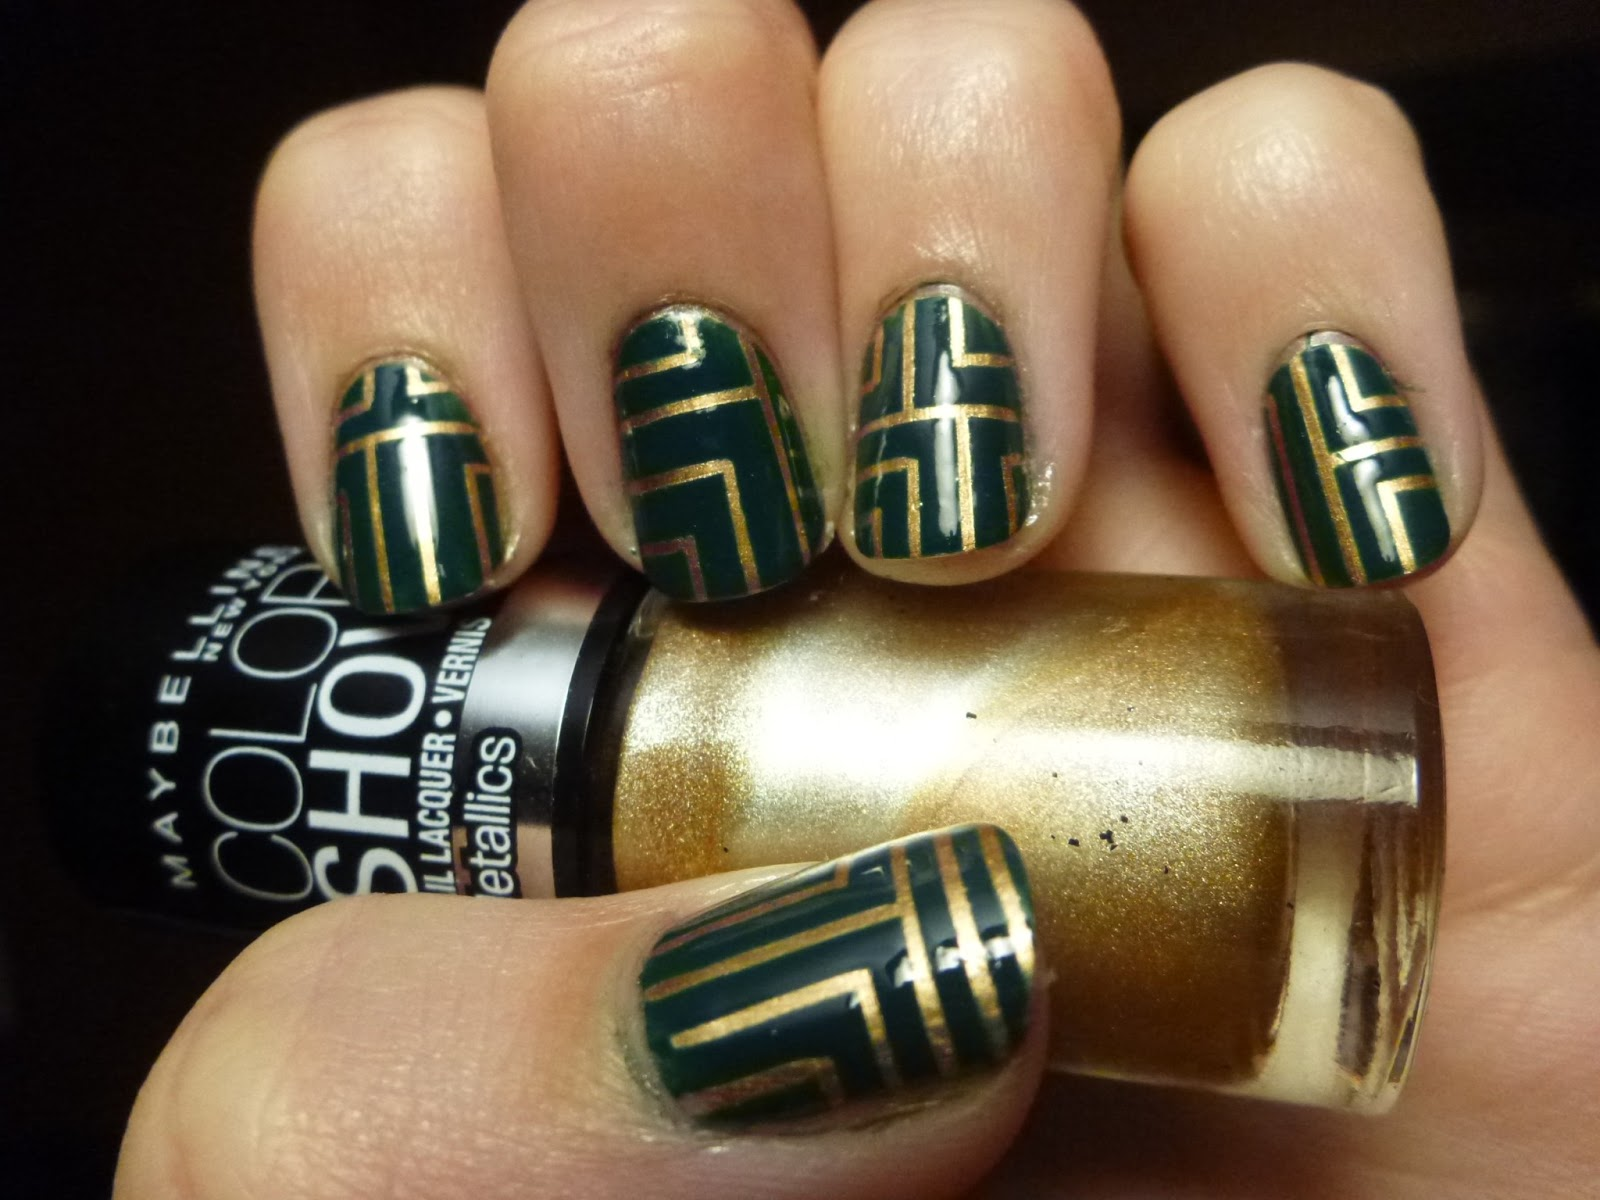 Adventures In Manicures Circuit Board Nails Tape I Finished The First Nail And Realized That Had Accidentally Done It Was Completely Unintentionally But Think Its A Cool Look So